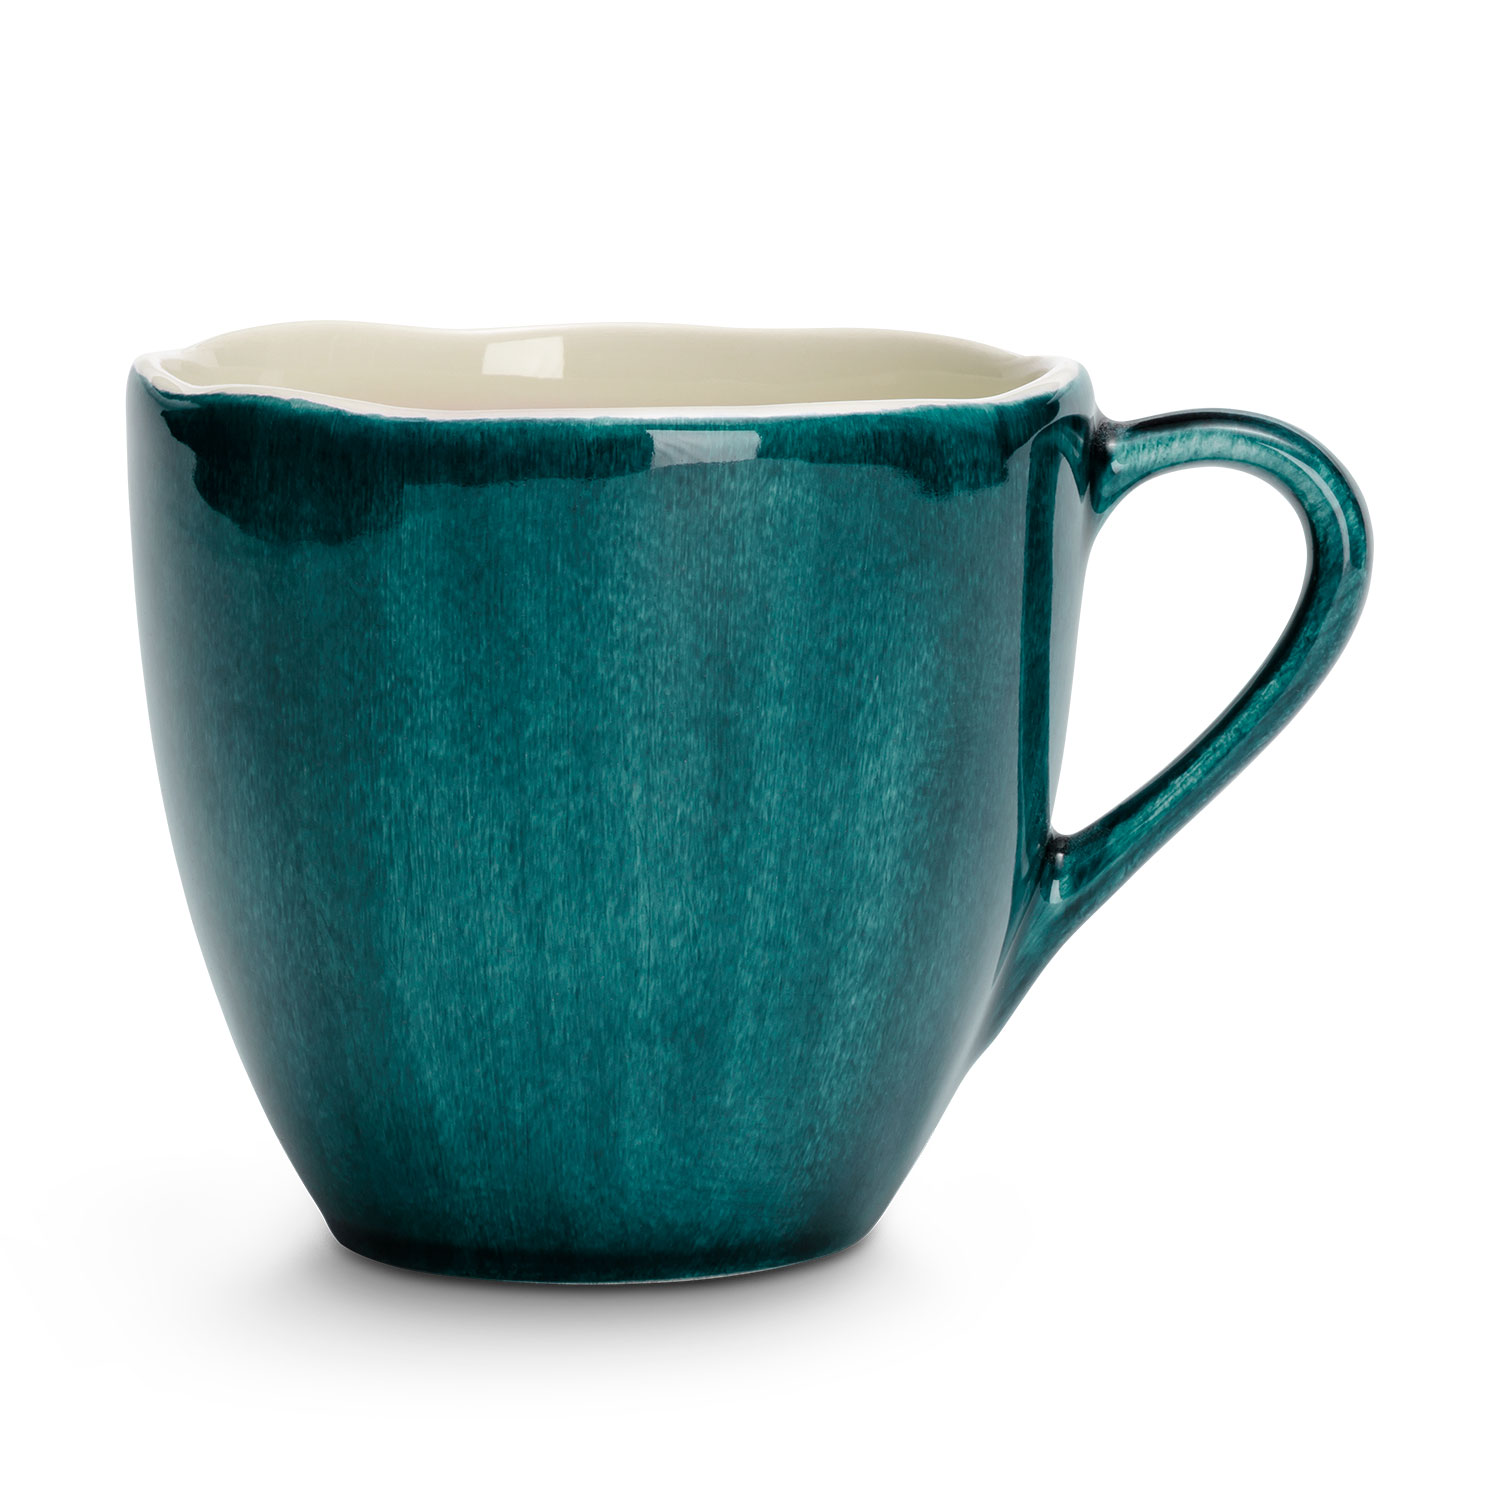 Promotional Eco-Friendly Mugs: Year round, people look forward to enjoying the satisfaction of a warm cup of coffee. Make these custom eco-friendly mugs a staple of everyone's day when you give them out at events of all kinds.